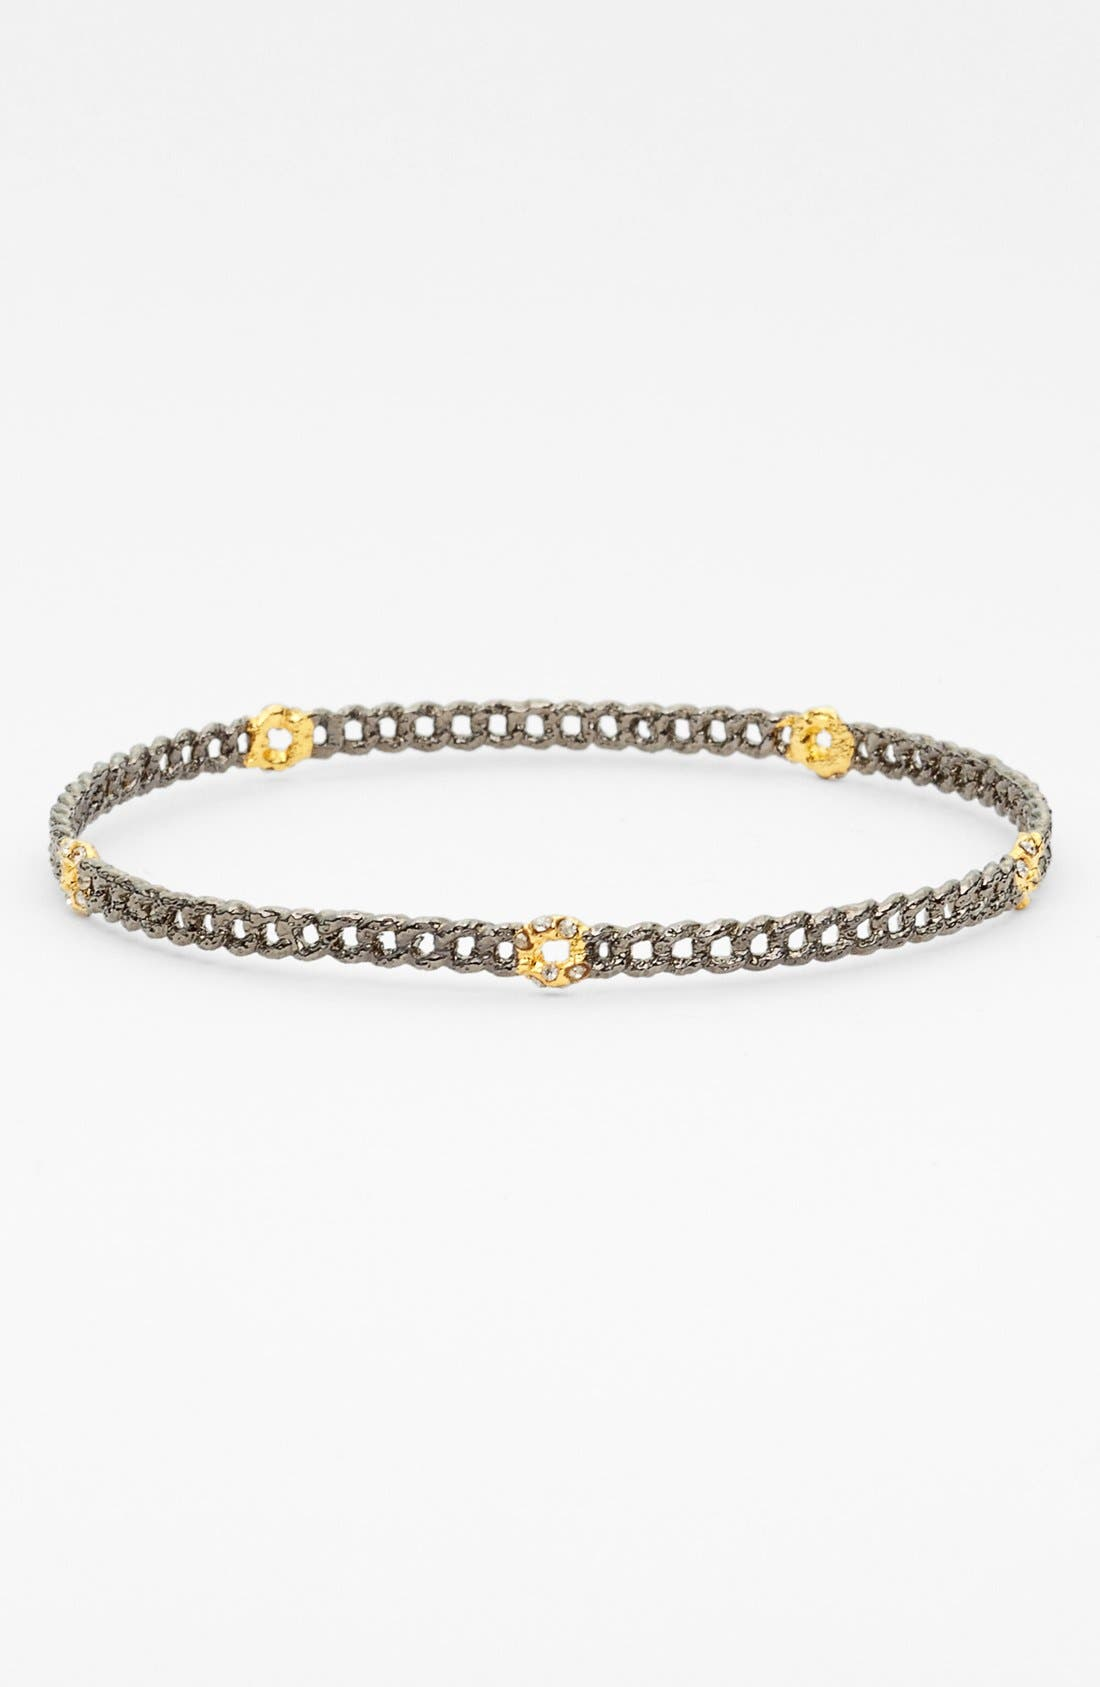 Main Image - Alexis Bittar 'Elements - Jardin de Papillon' Chain Link Bangle